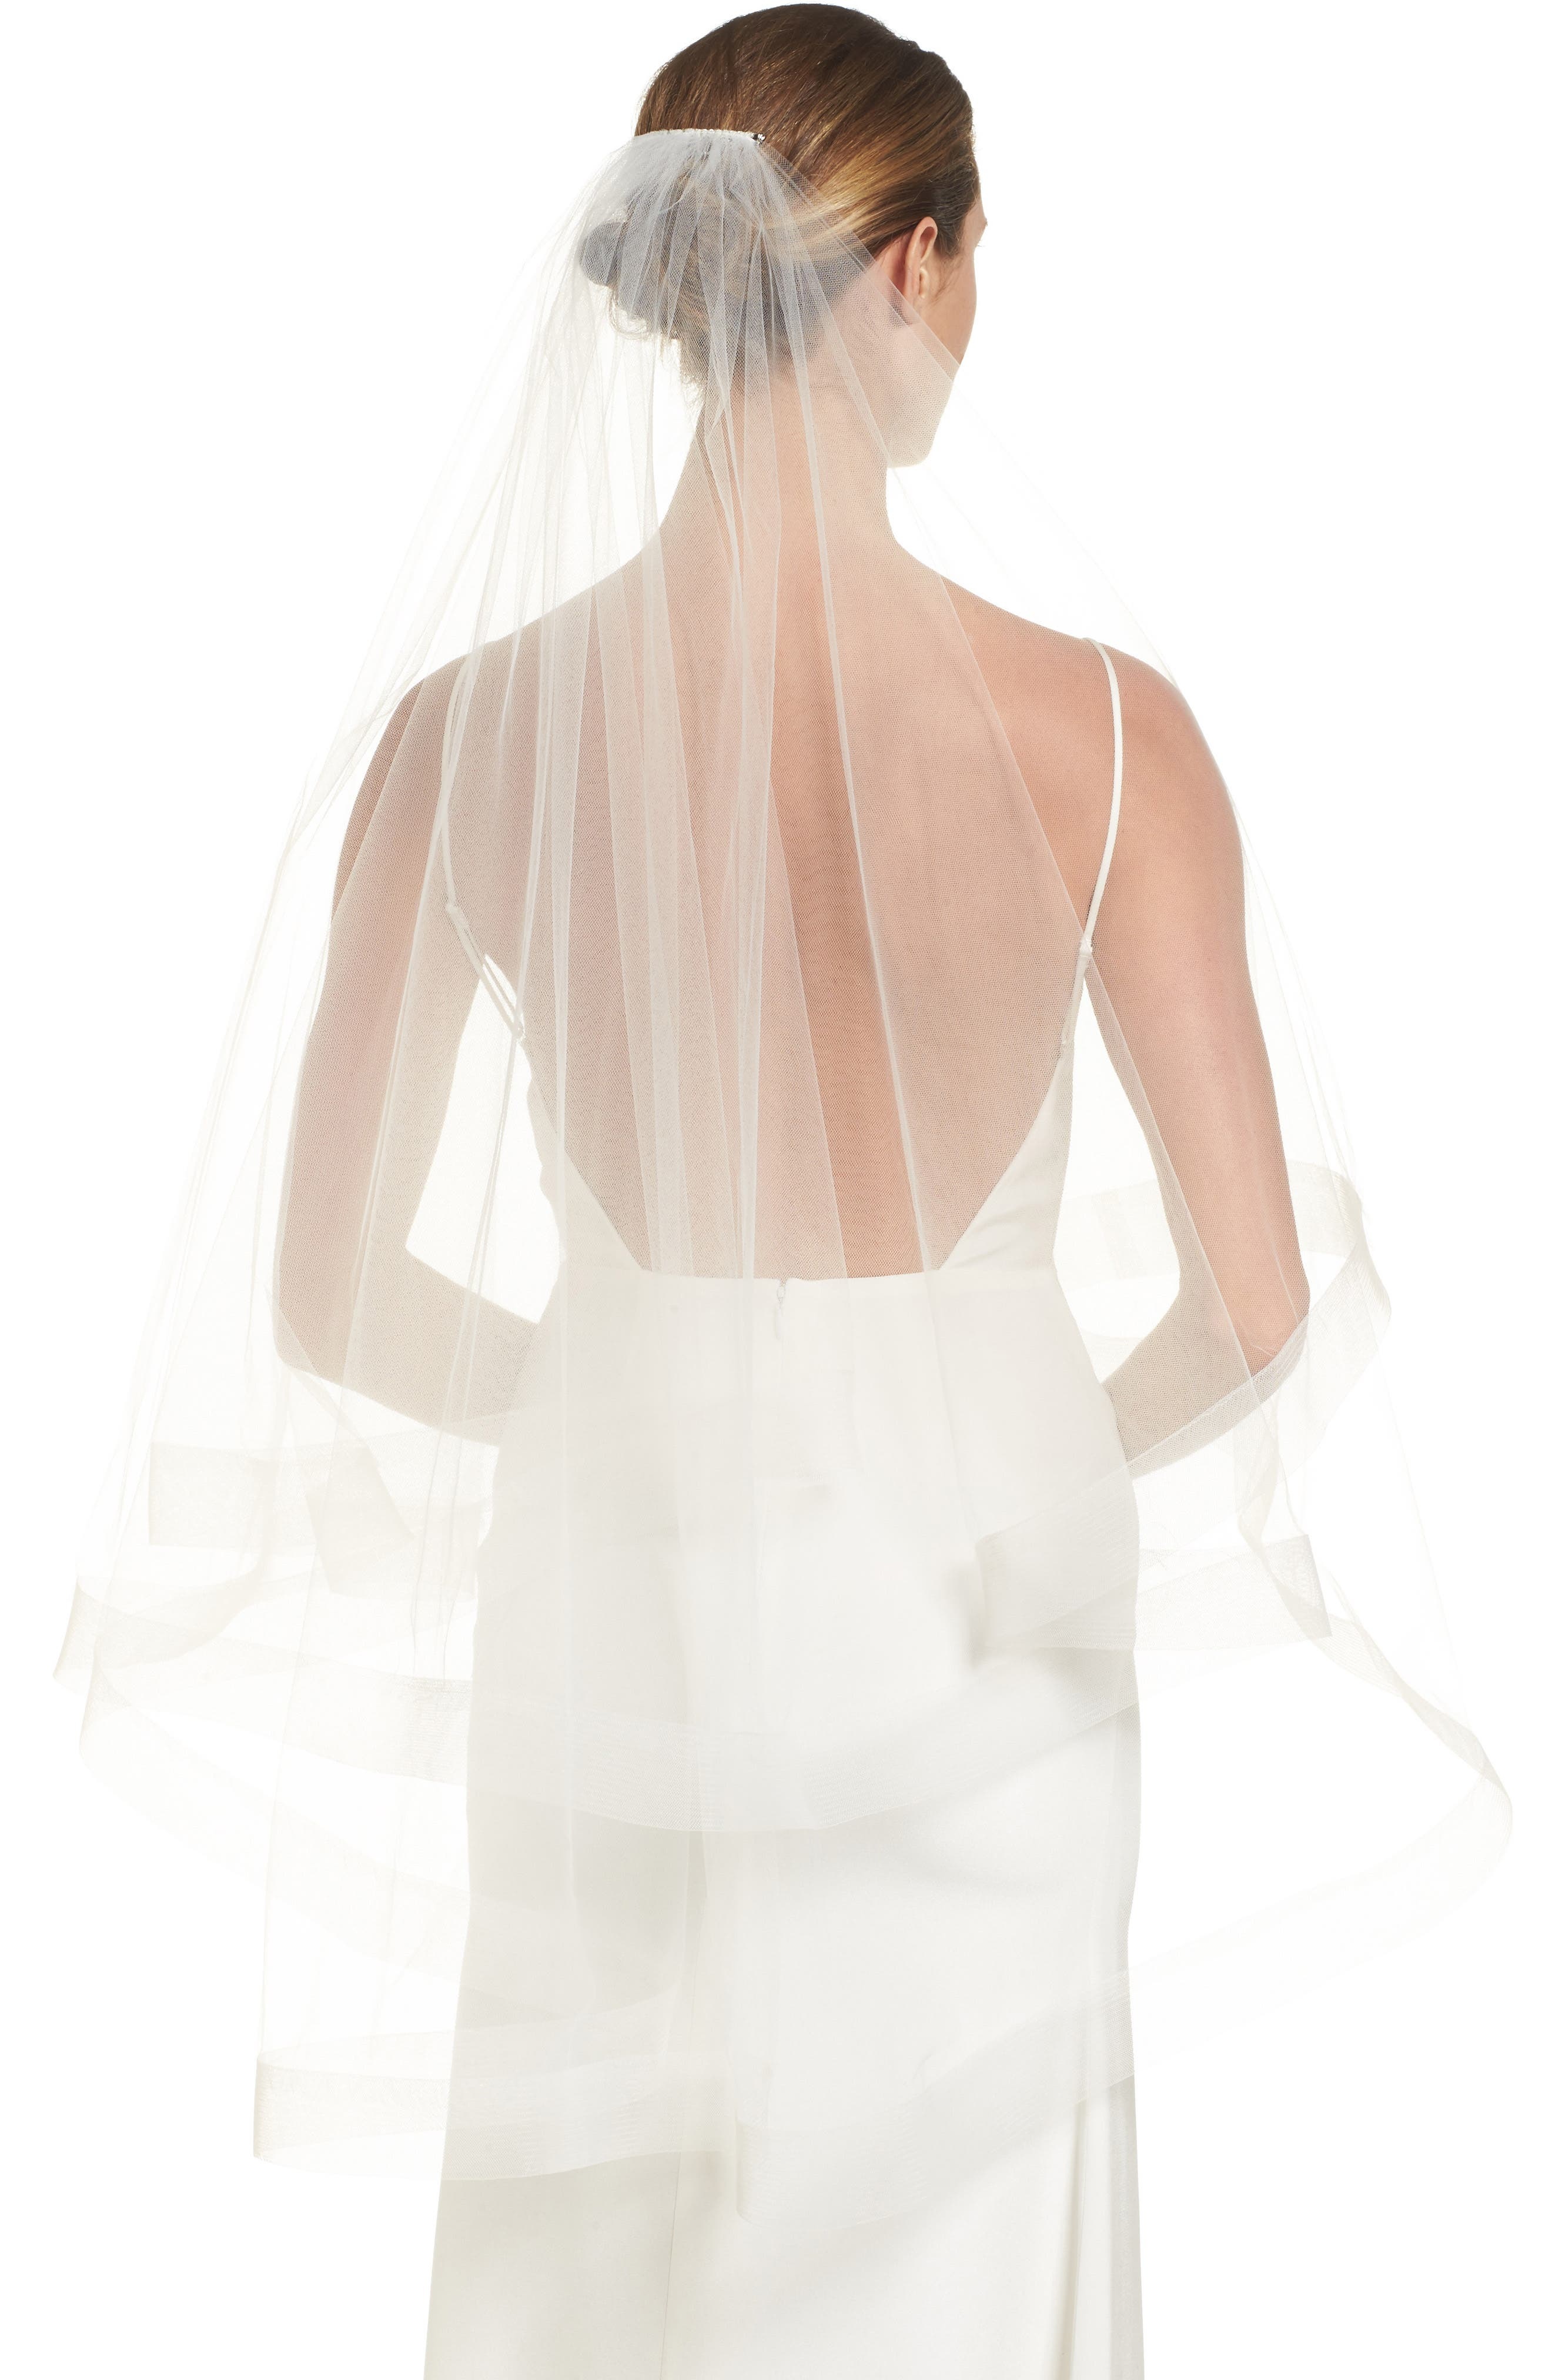 Dickinson Bridal Veil,                         Main,                         color, Light Ivory